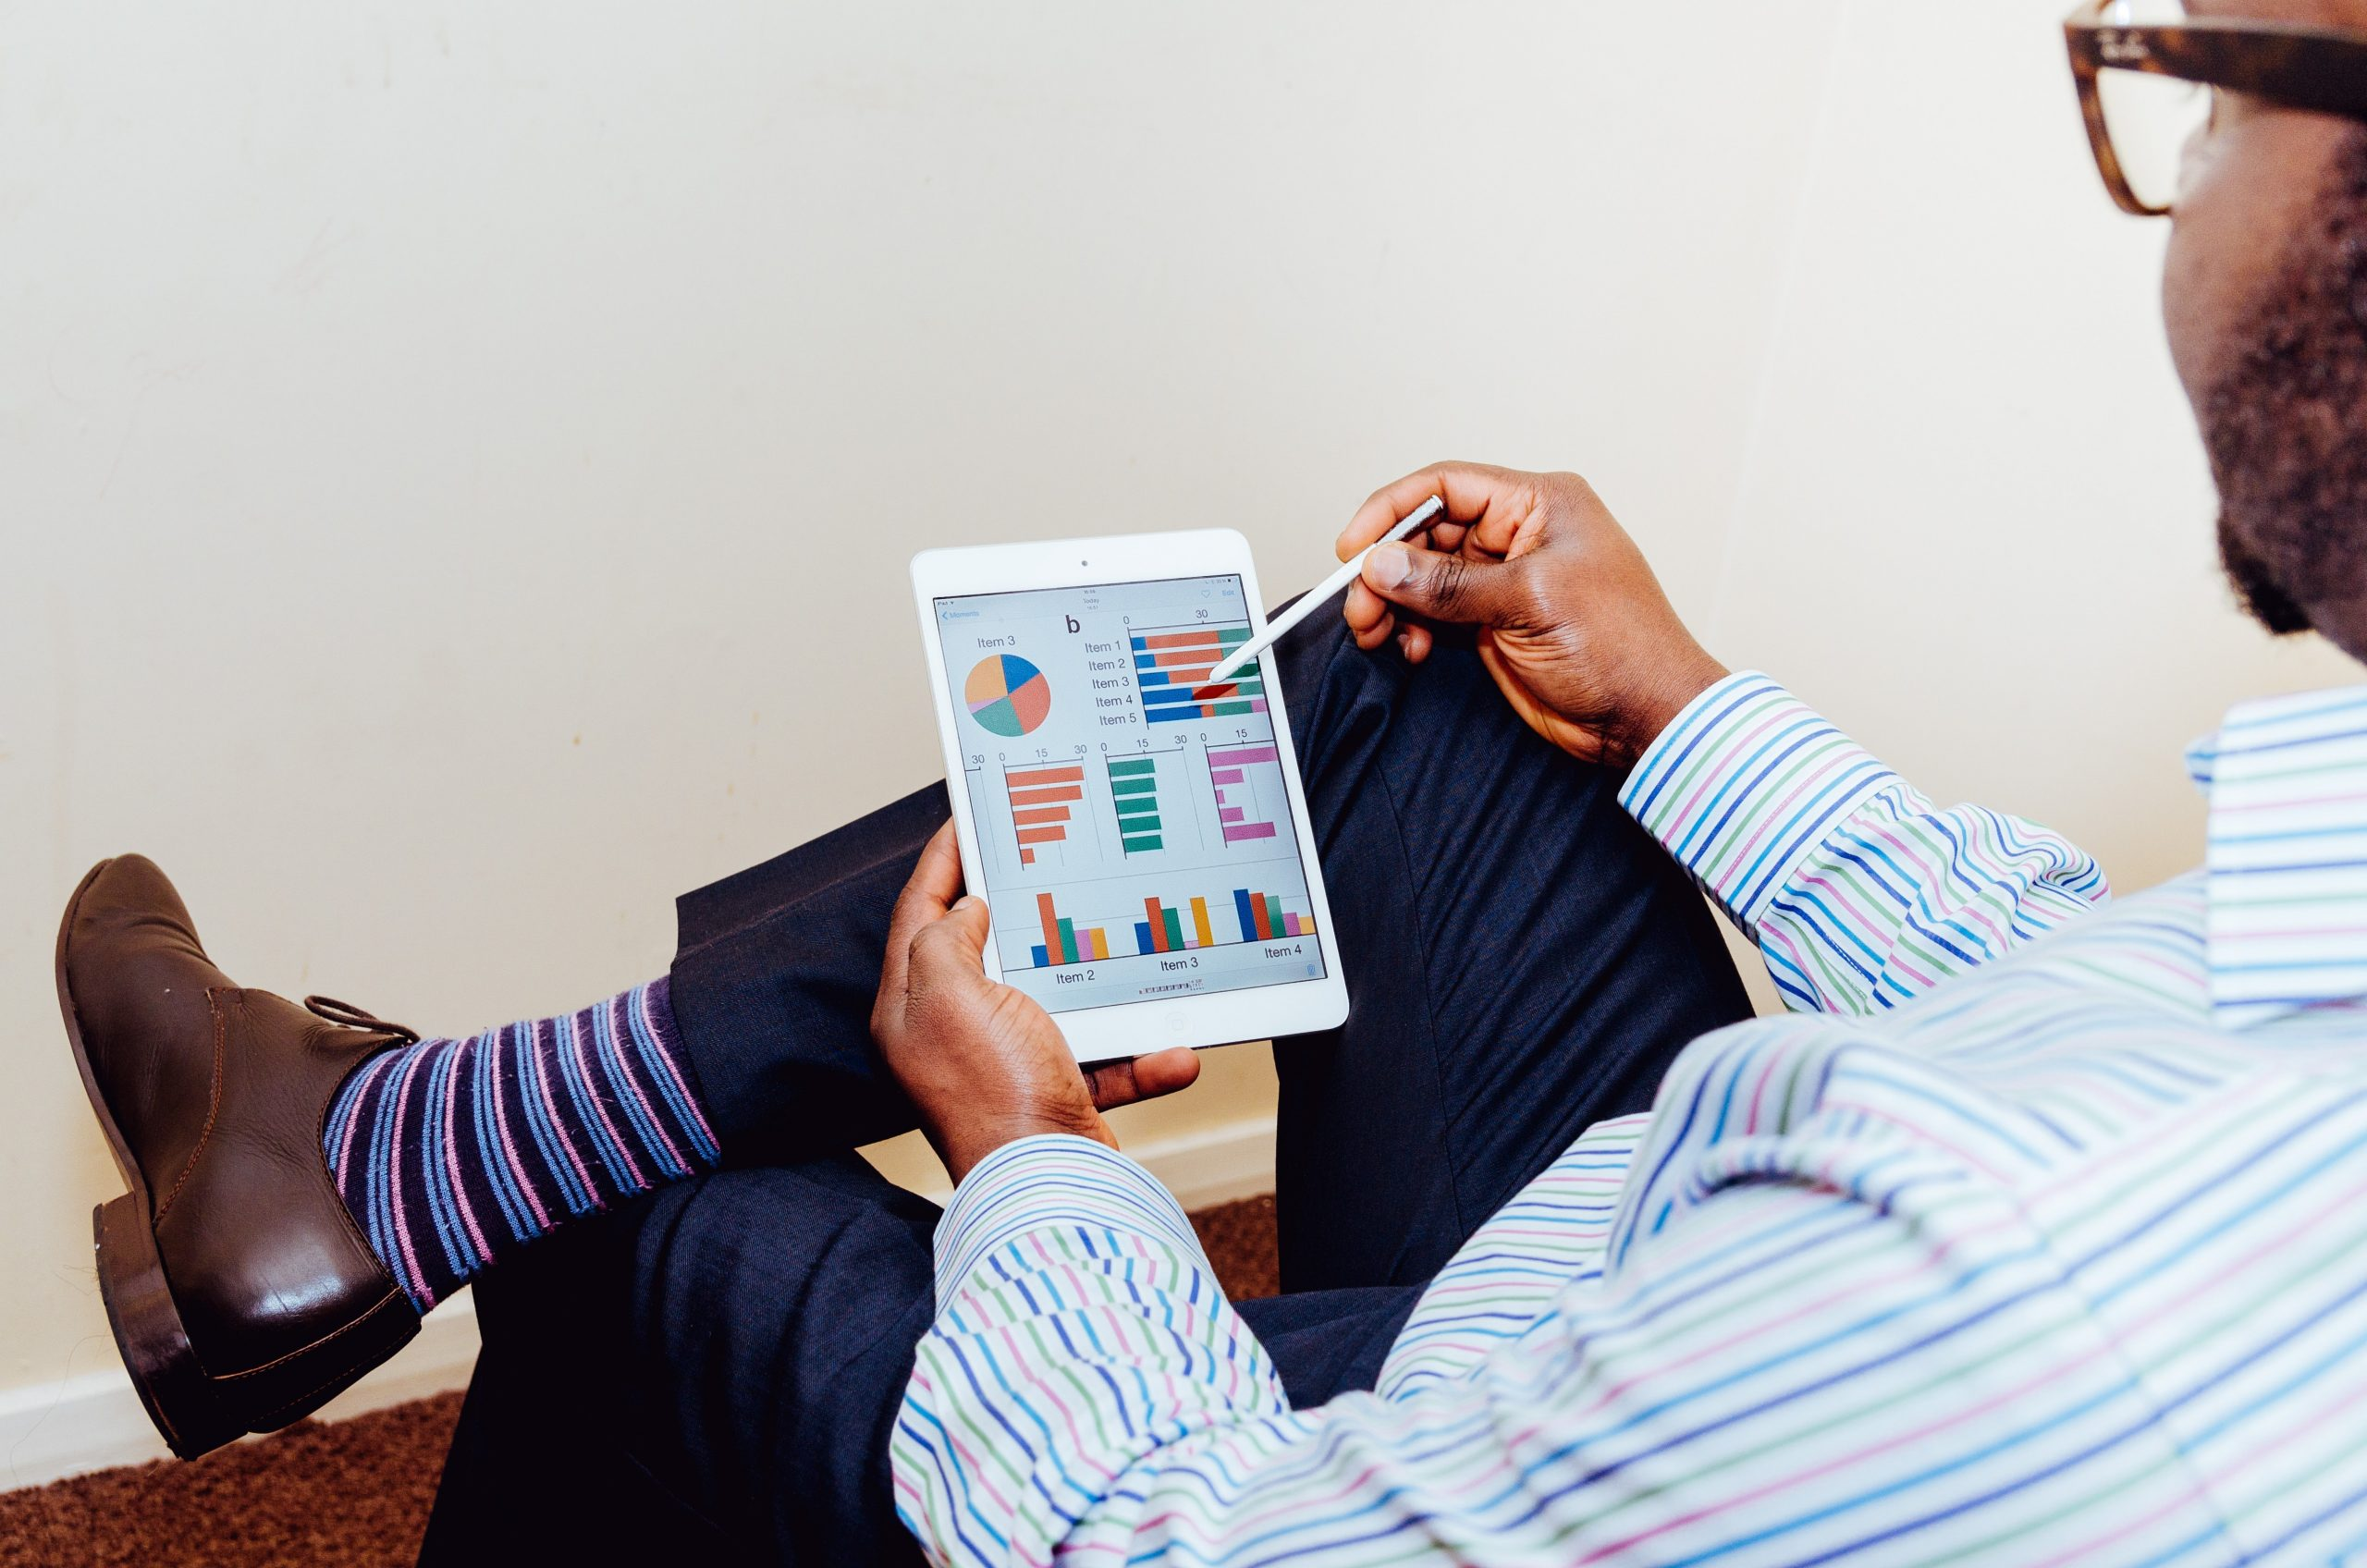 A 5-step plan for a data-driven HR policy